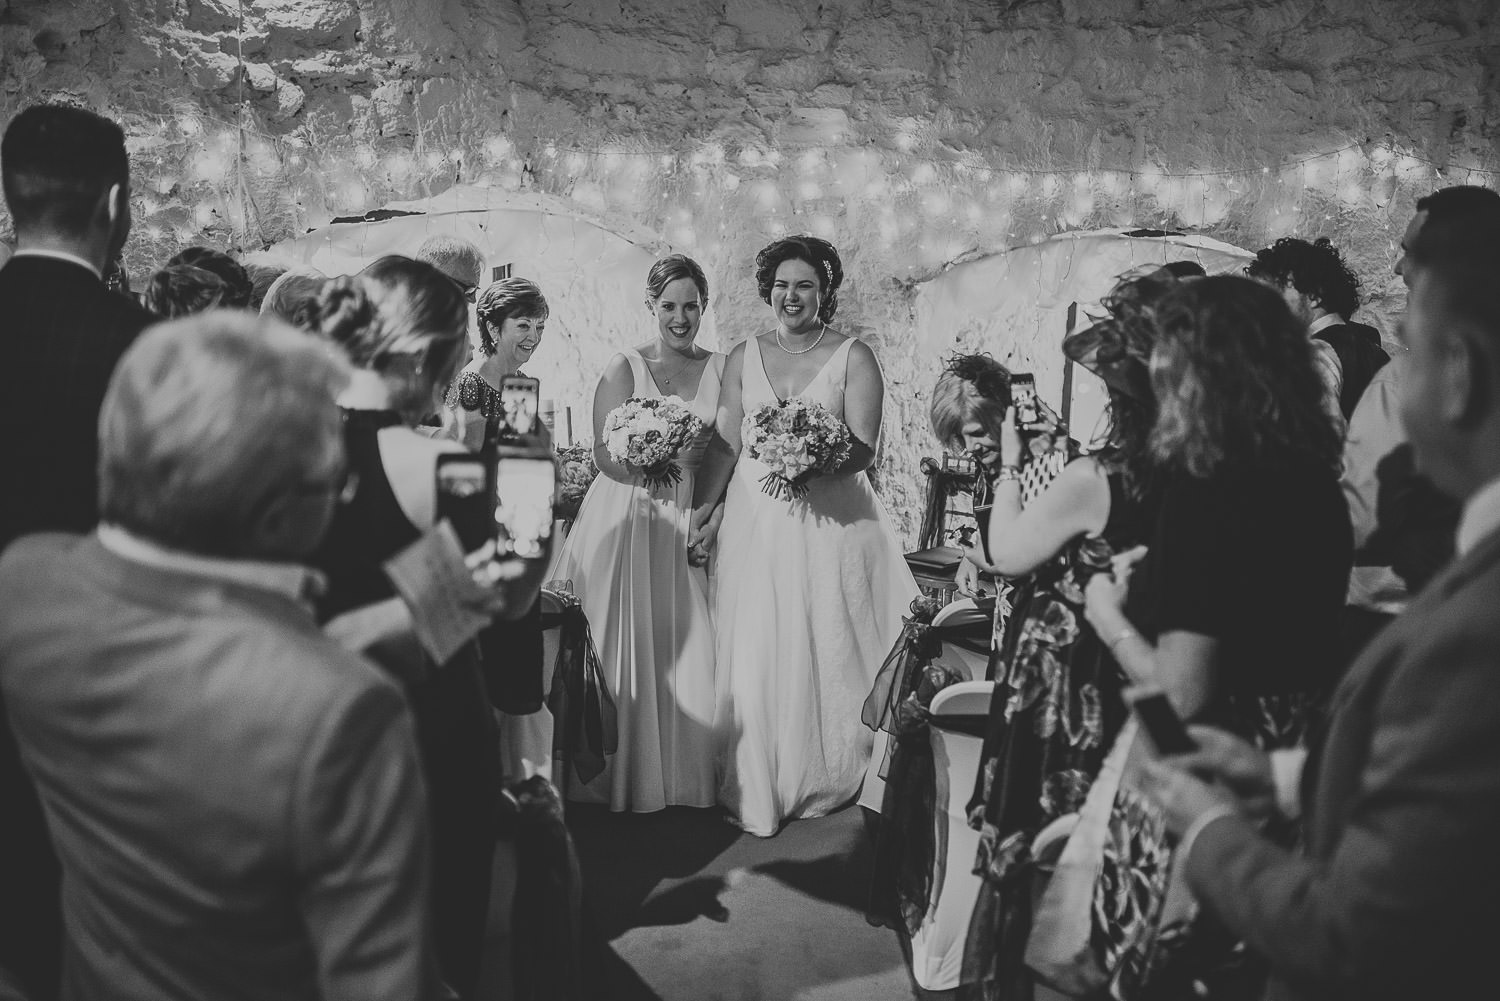 brides walking down the aisle together